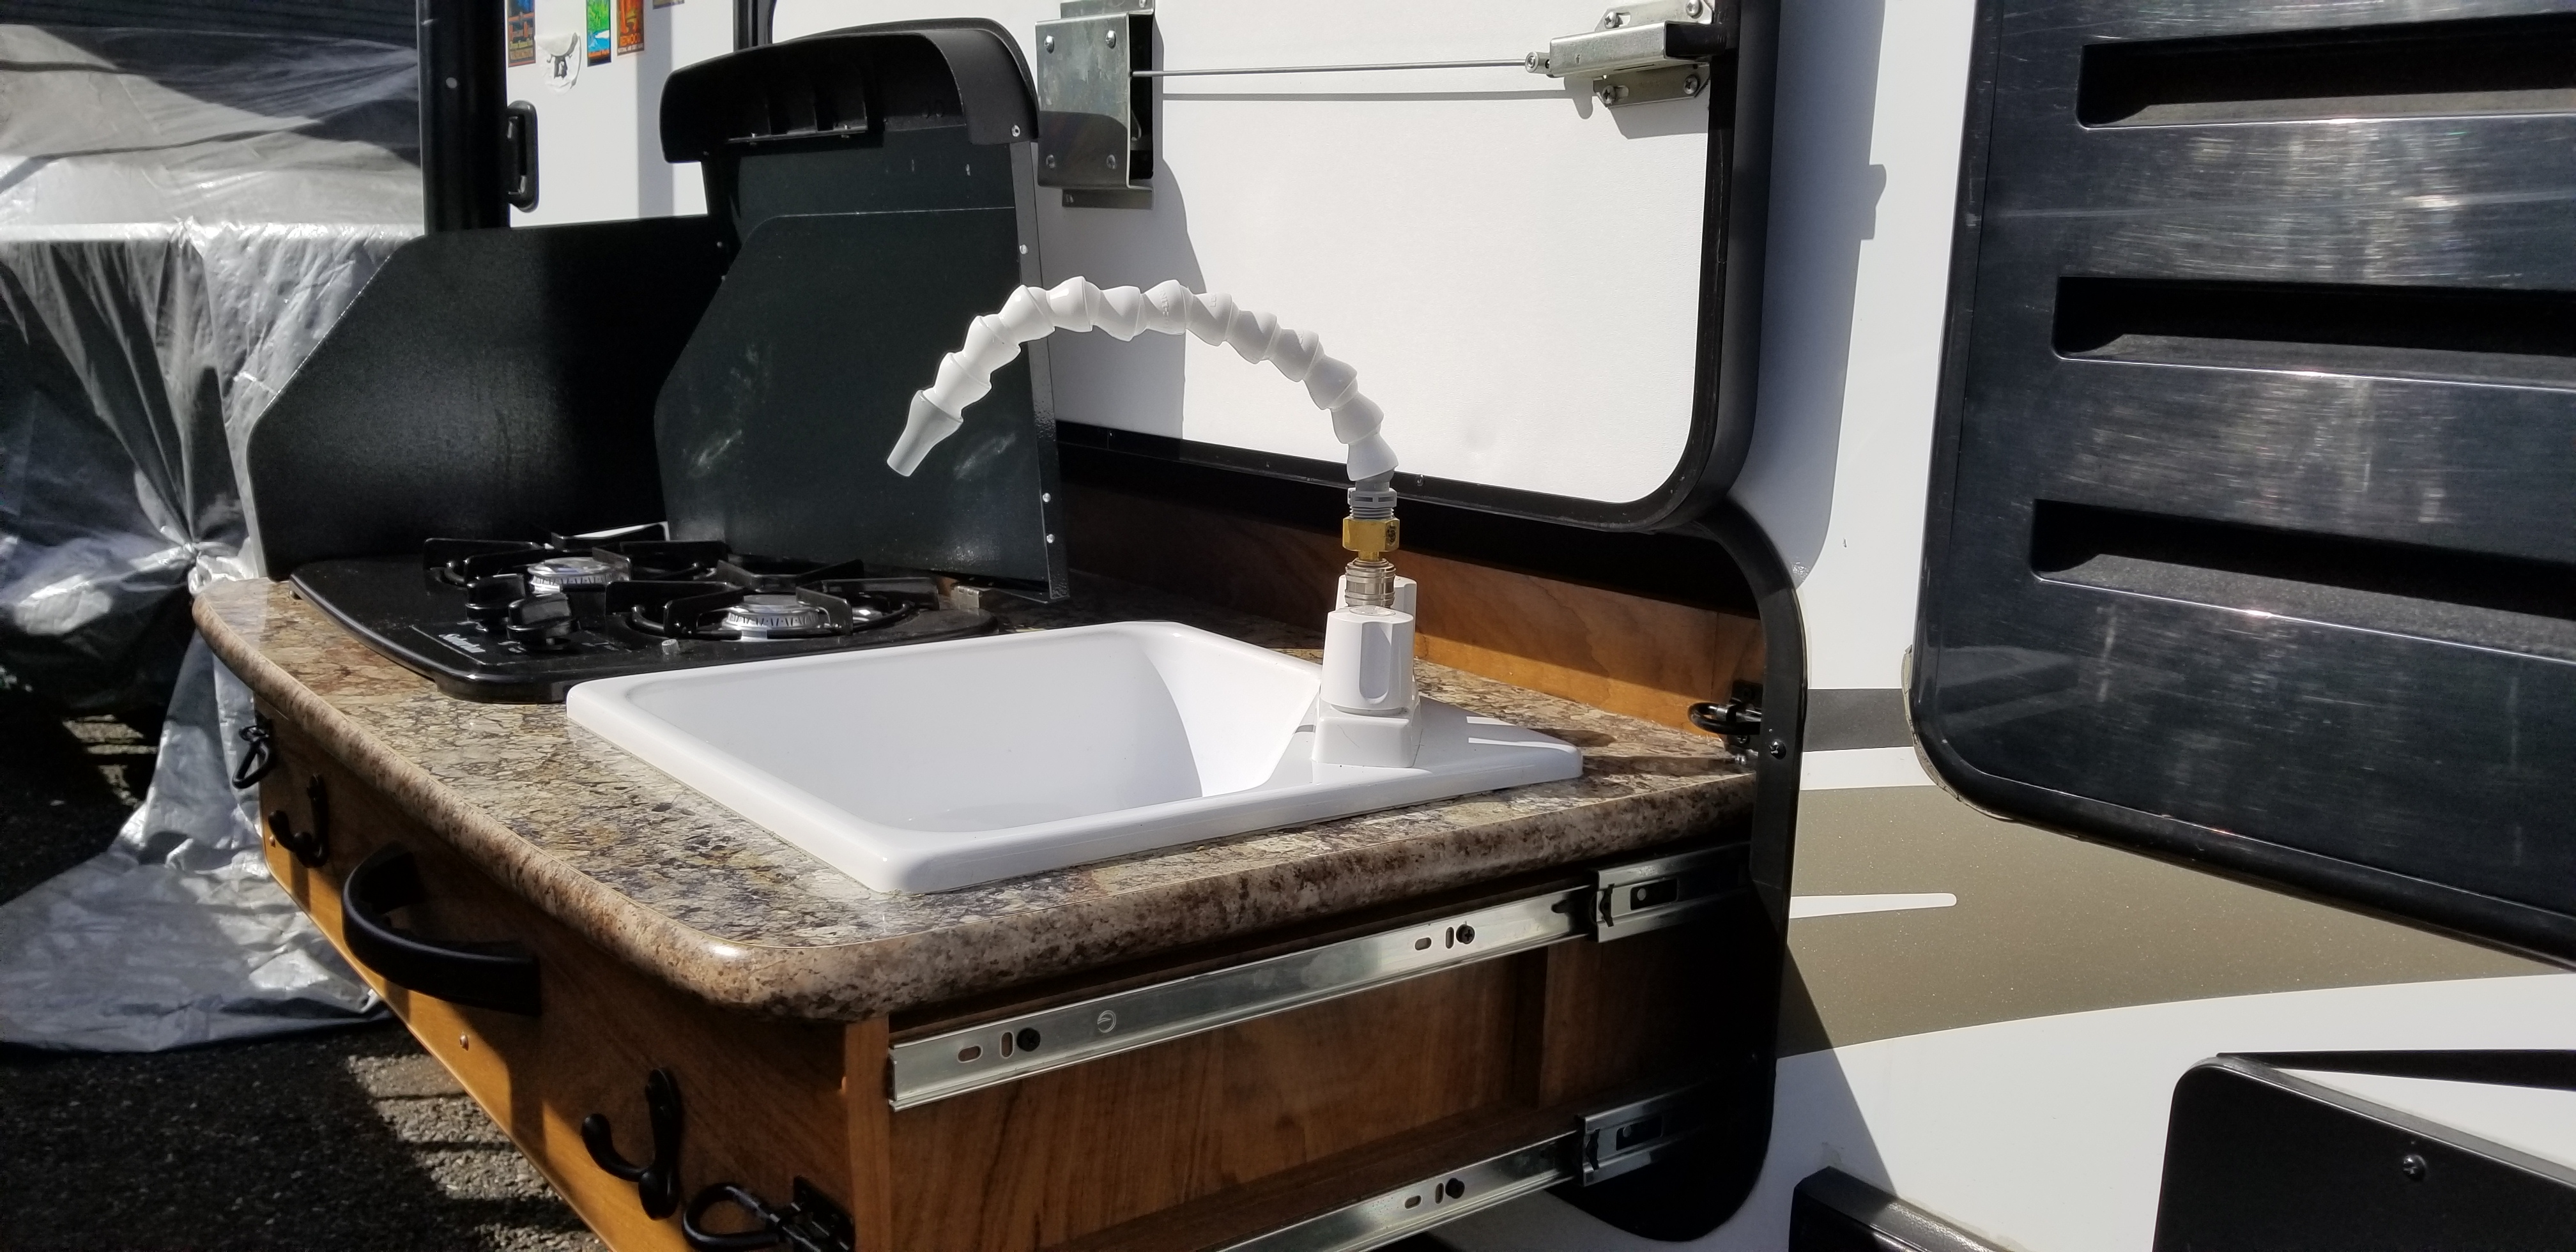 Slide-out outdoor kitchen.  2 burner stove and sink. Outdoors Rv Manufacturing Creek Side 2016